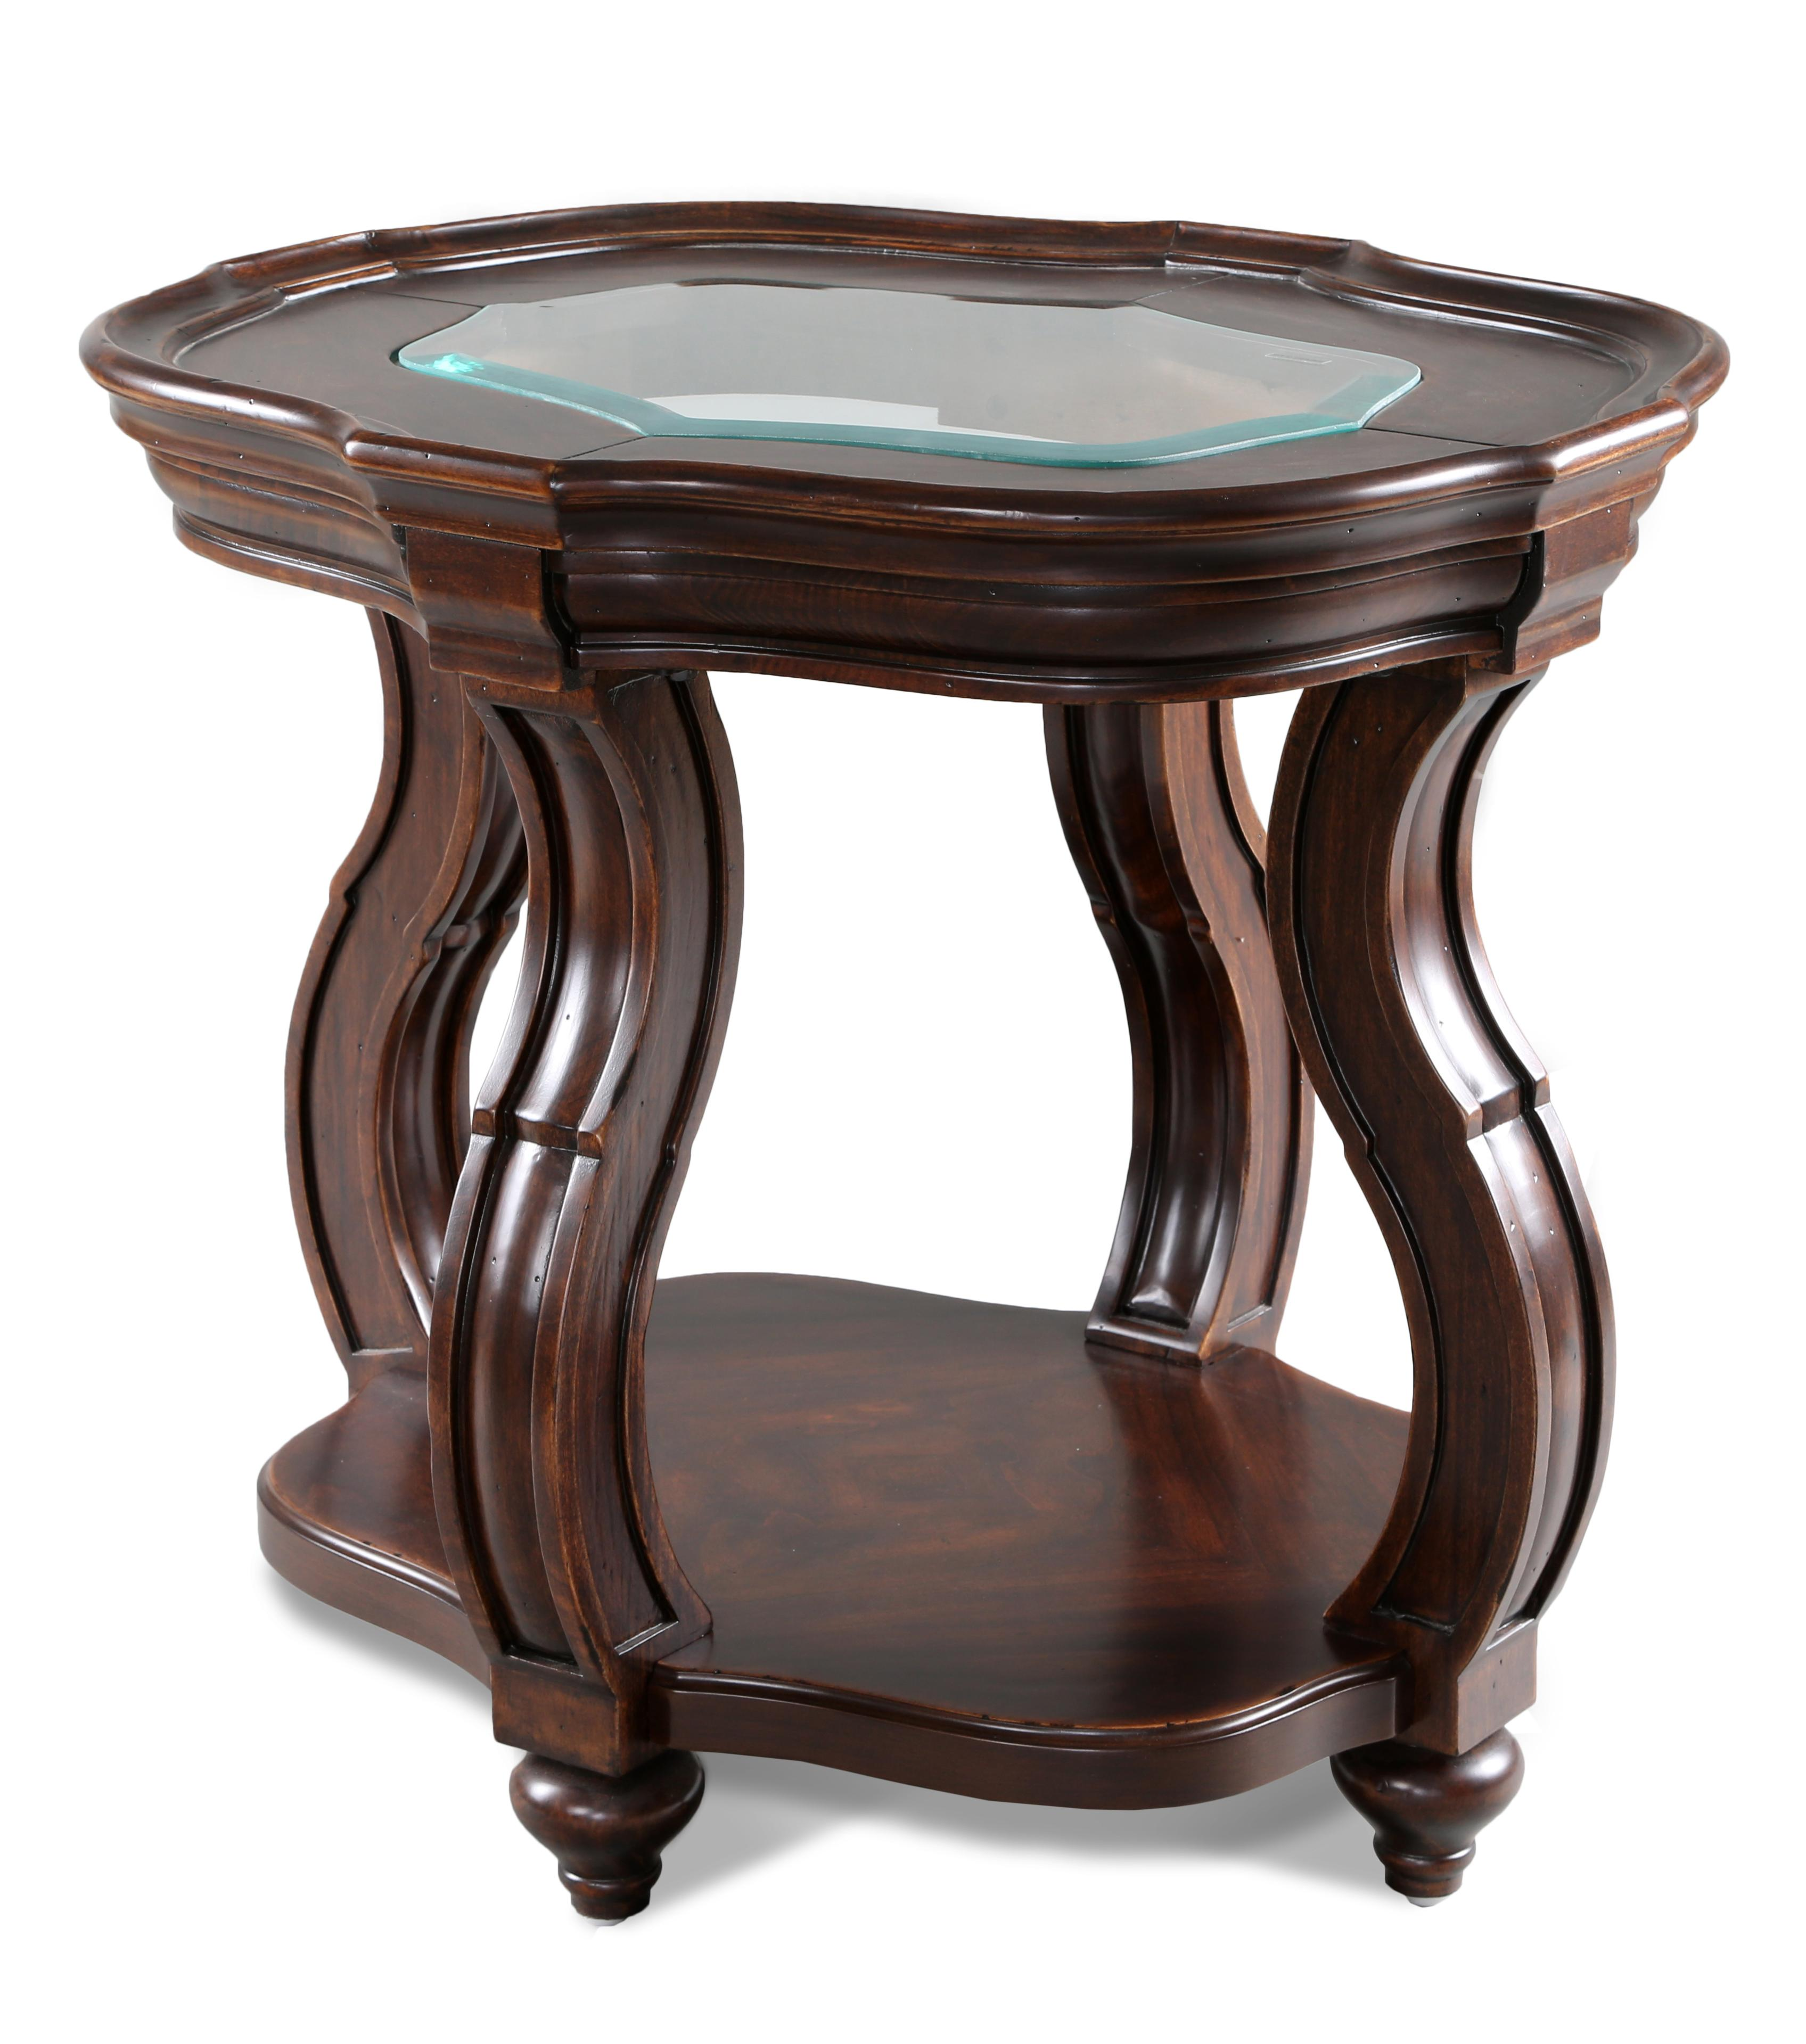 Traditional Oval End Table with Glass Top